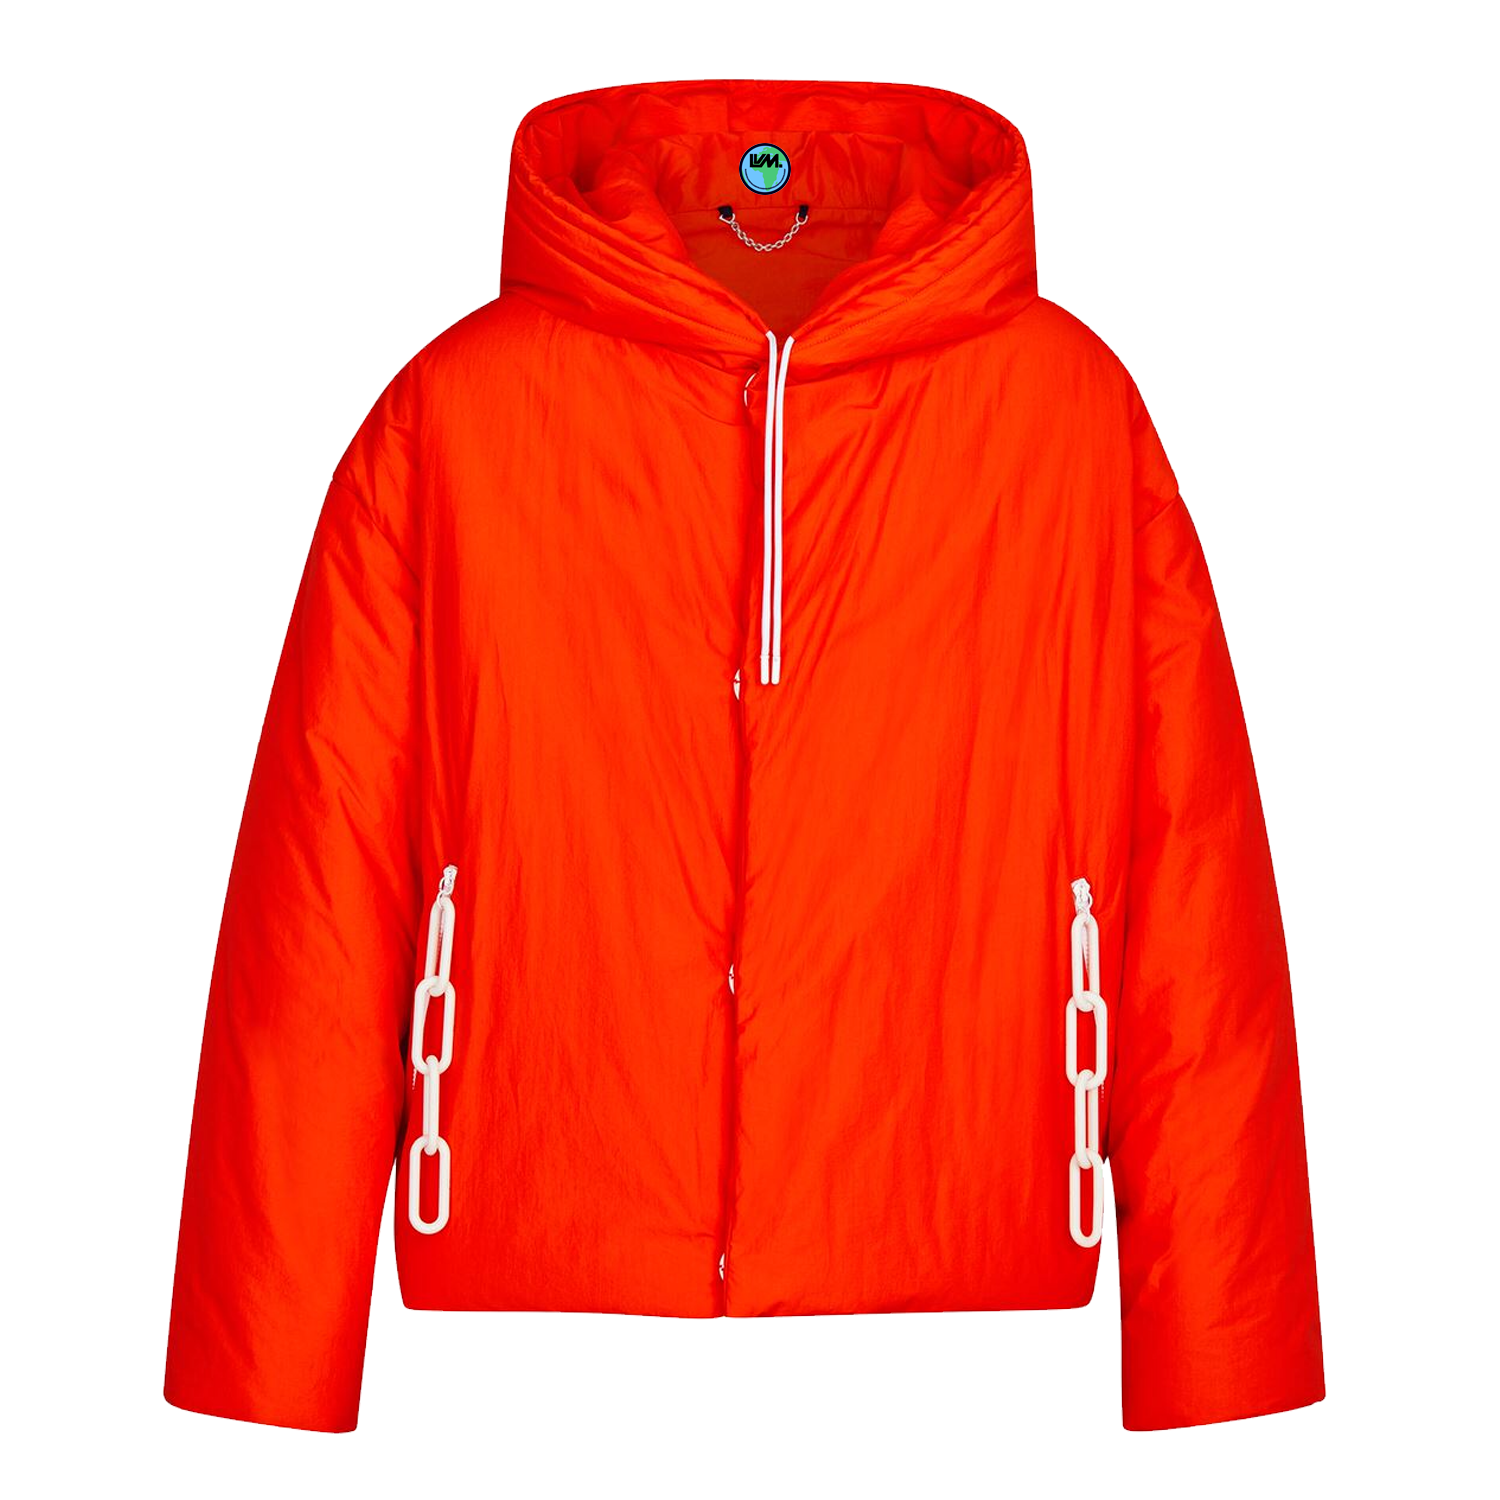 snapped button anorak - €2500 $33501a5dhforange